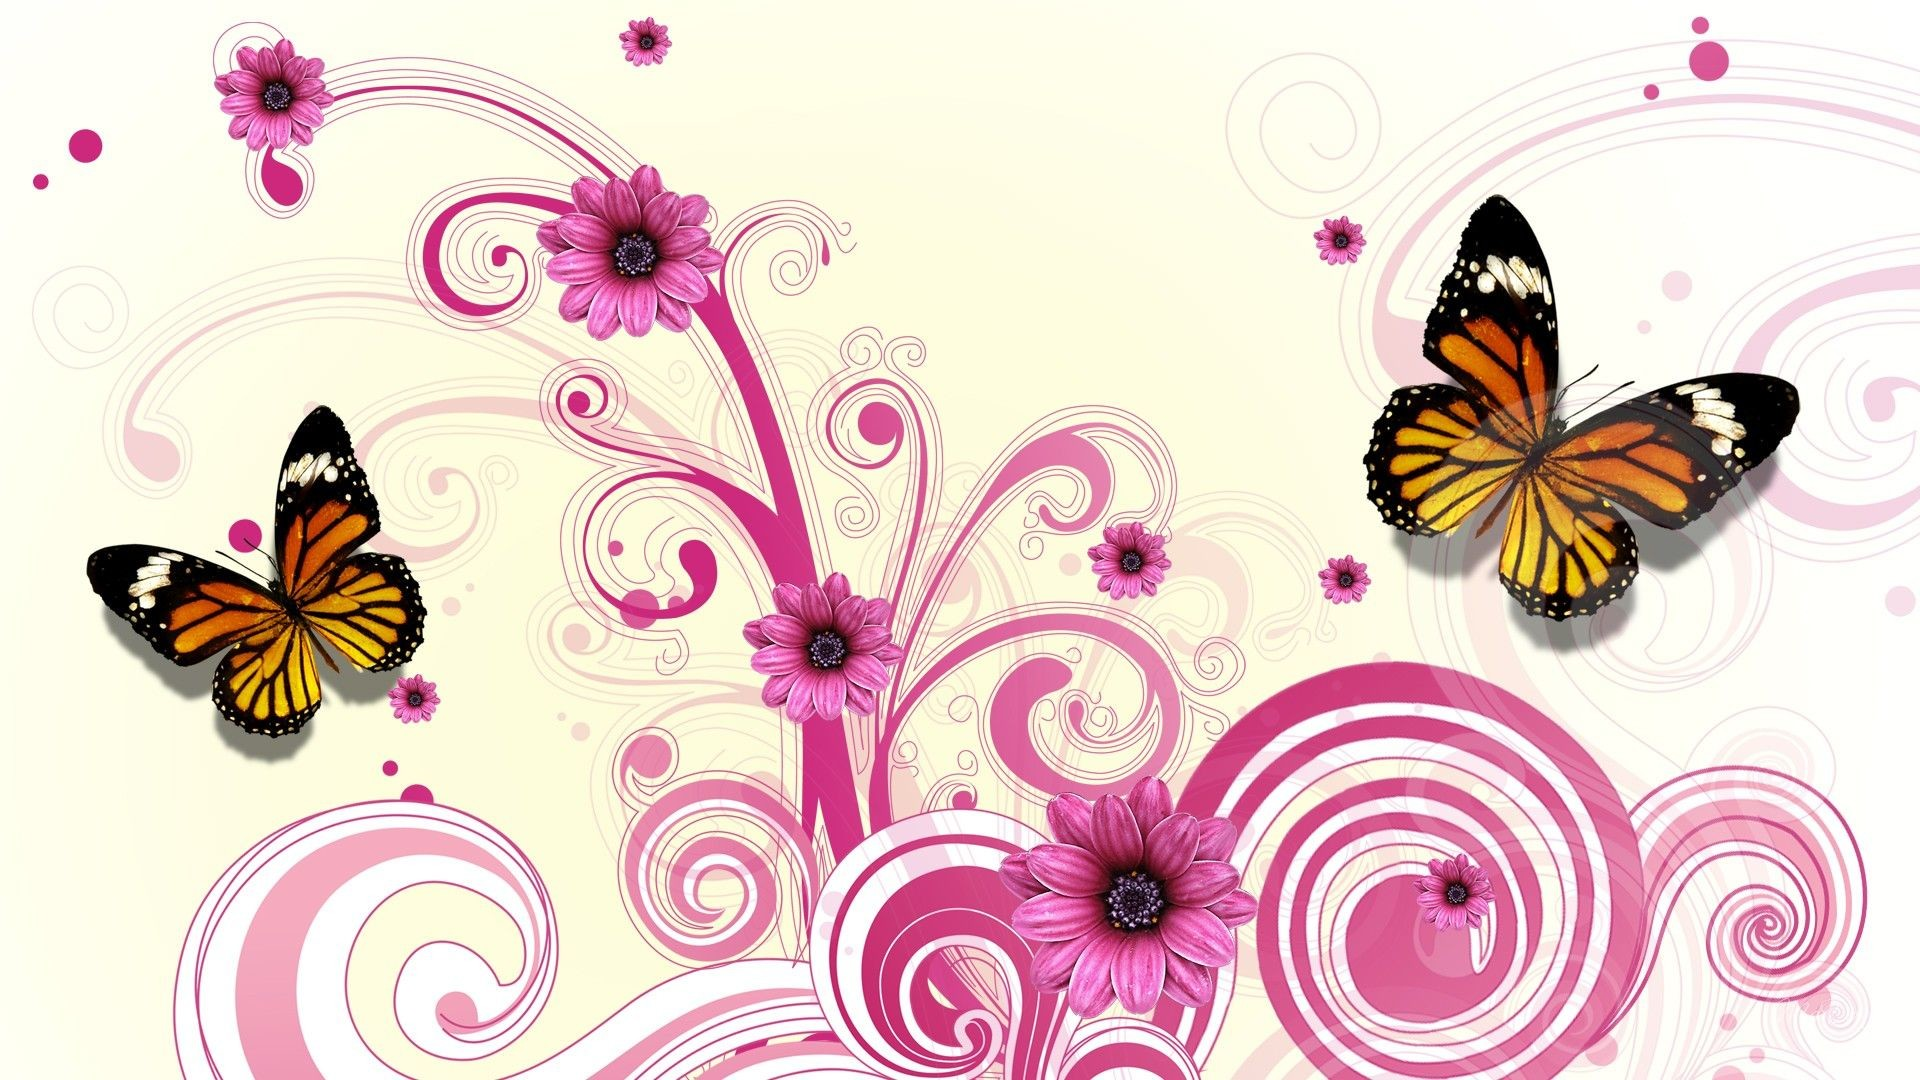 Res: 1920x1080, Pink Floral | Download Vector Floral Pink Flowers Abstract Butterfly  wallpaper .